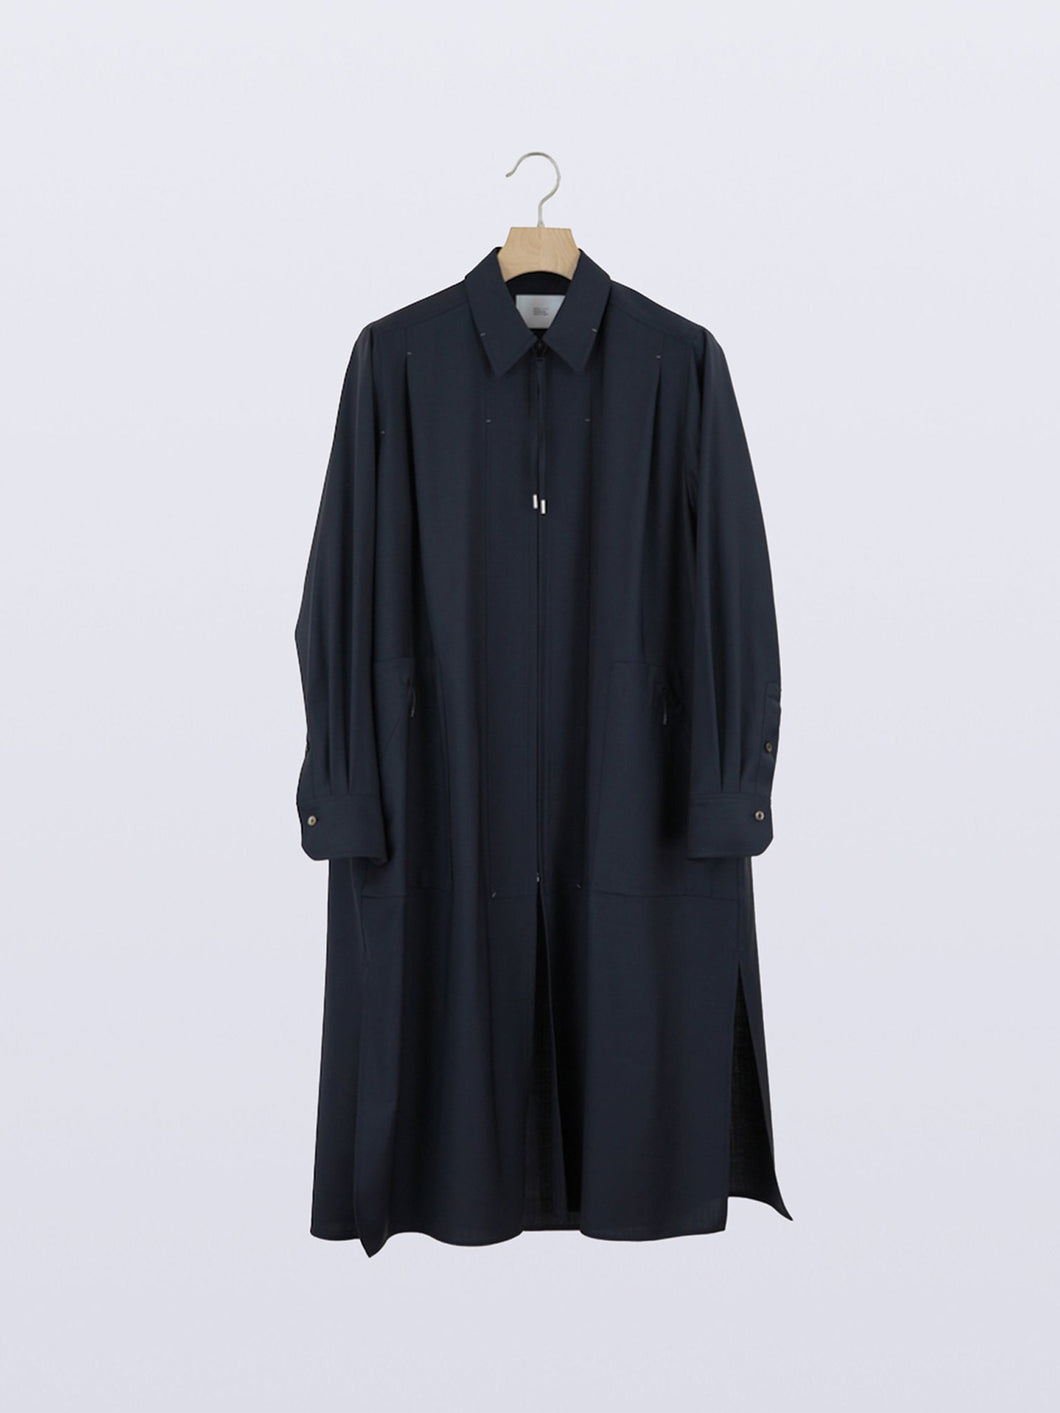 HATRA / Window Shirt (CHARCOAL)